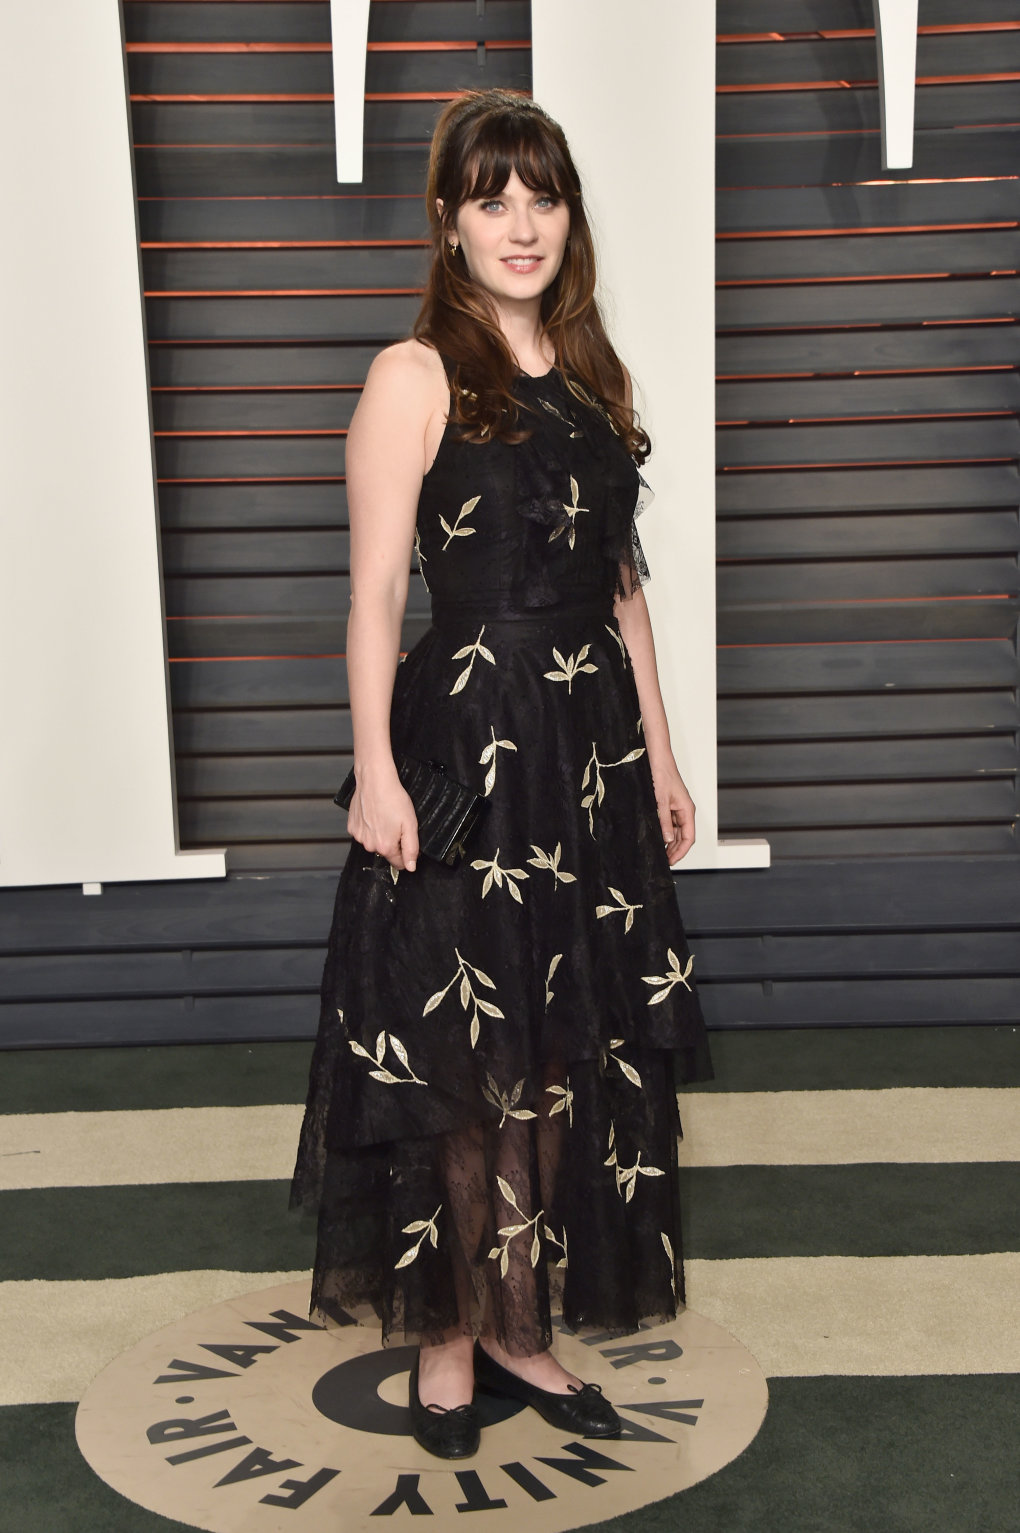 zooey deschanelvanity fair party